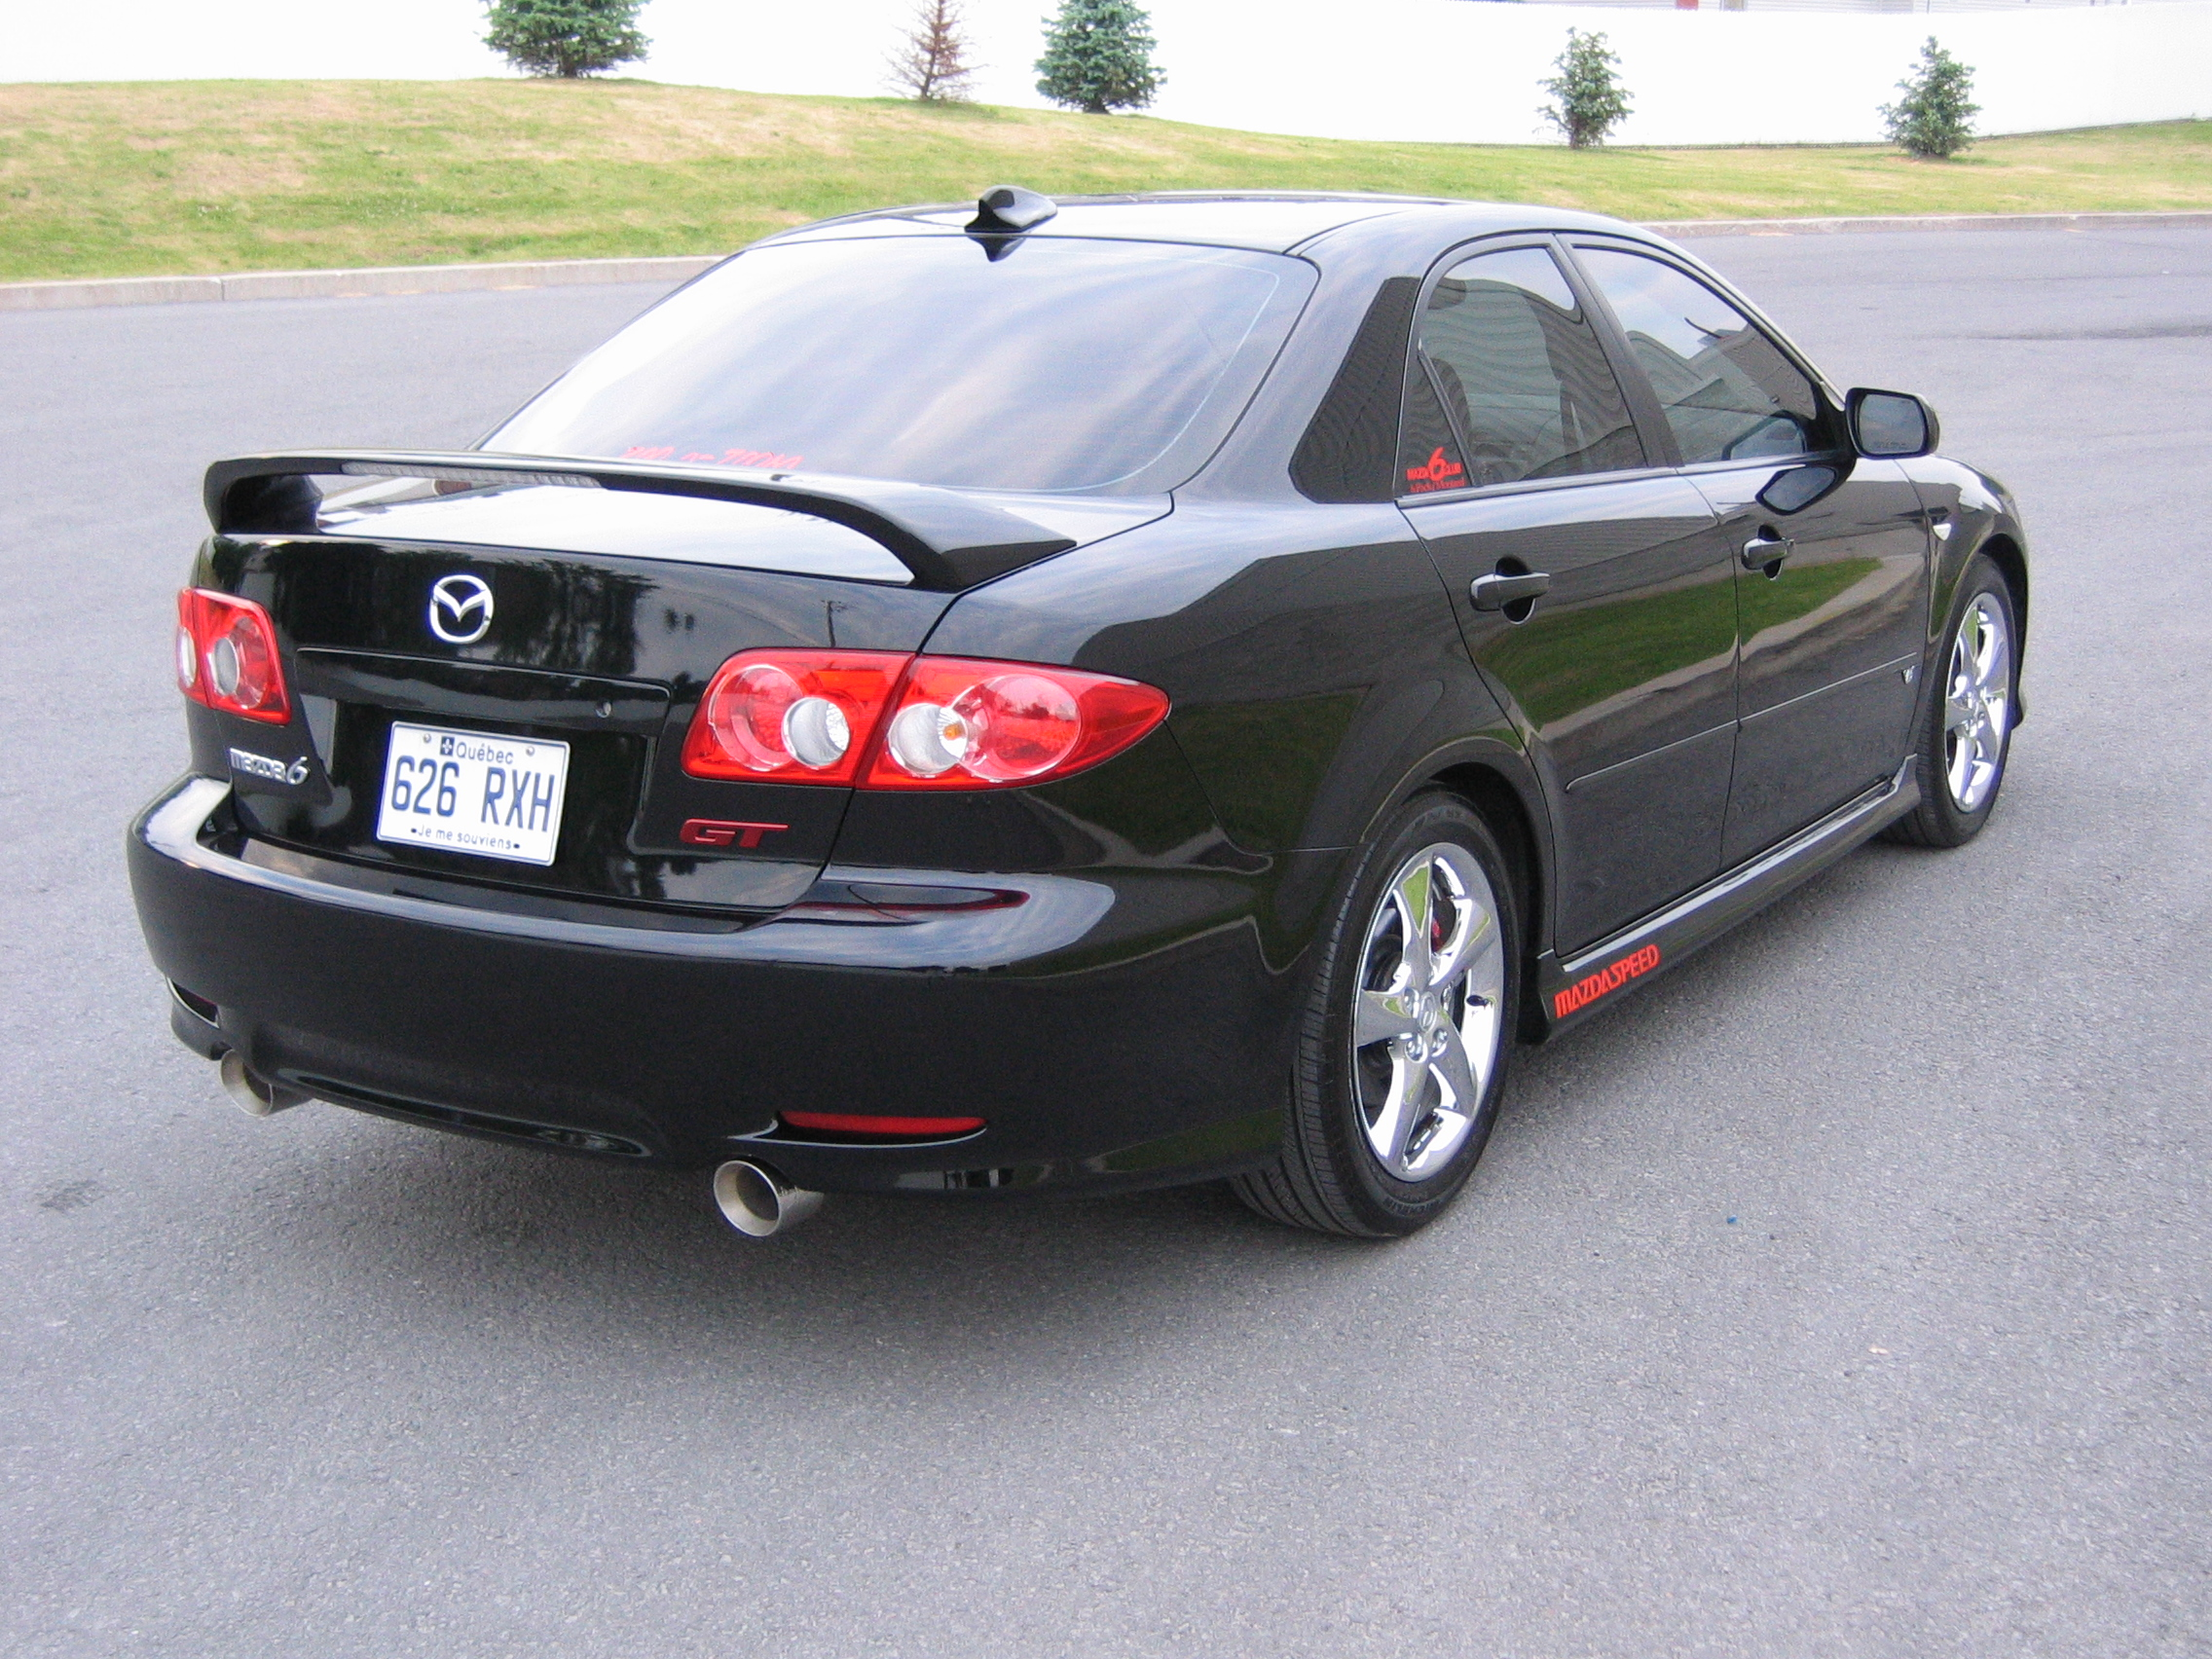 mazda 6 2005 review amazing pictures and images look at the car. Black Bedroom Furniture Sets. Home Design Ideas